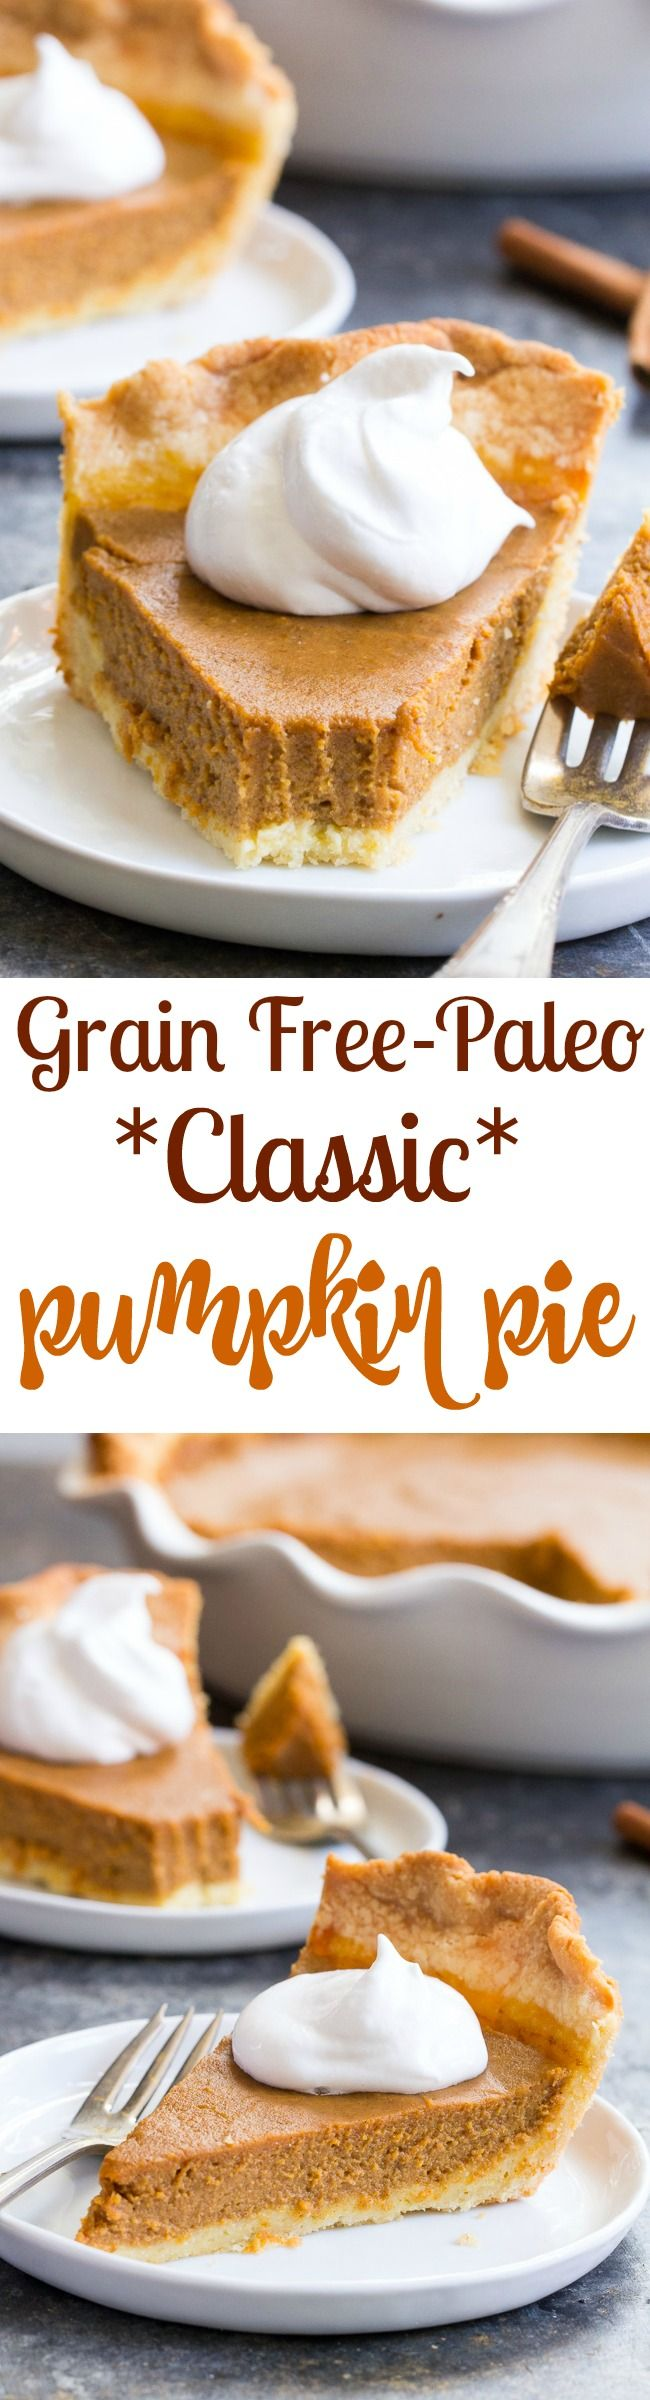 This classic Paleo Pumpkin Pie is just as delicious as any traditional pie you've made! Gluten free, grain free, dairy-free, family approved!